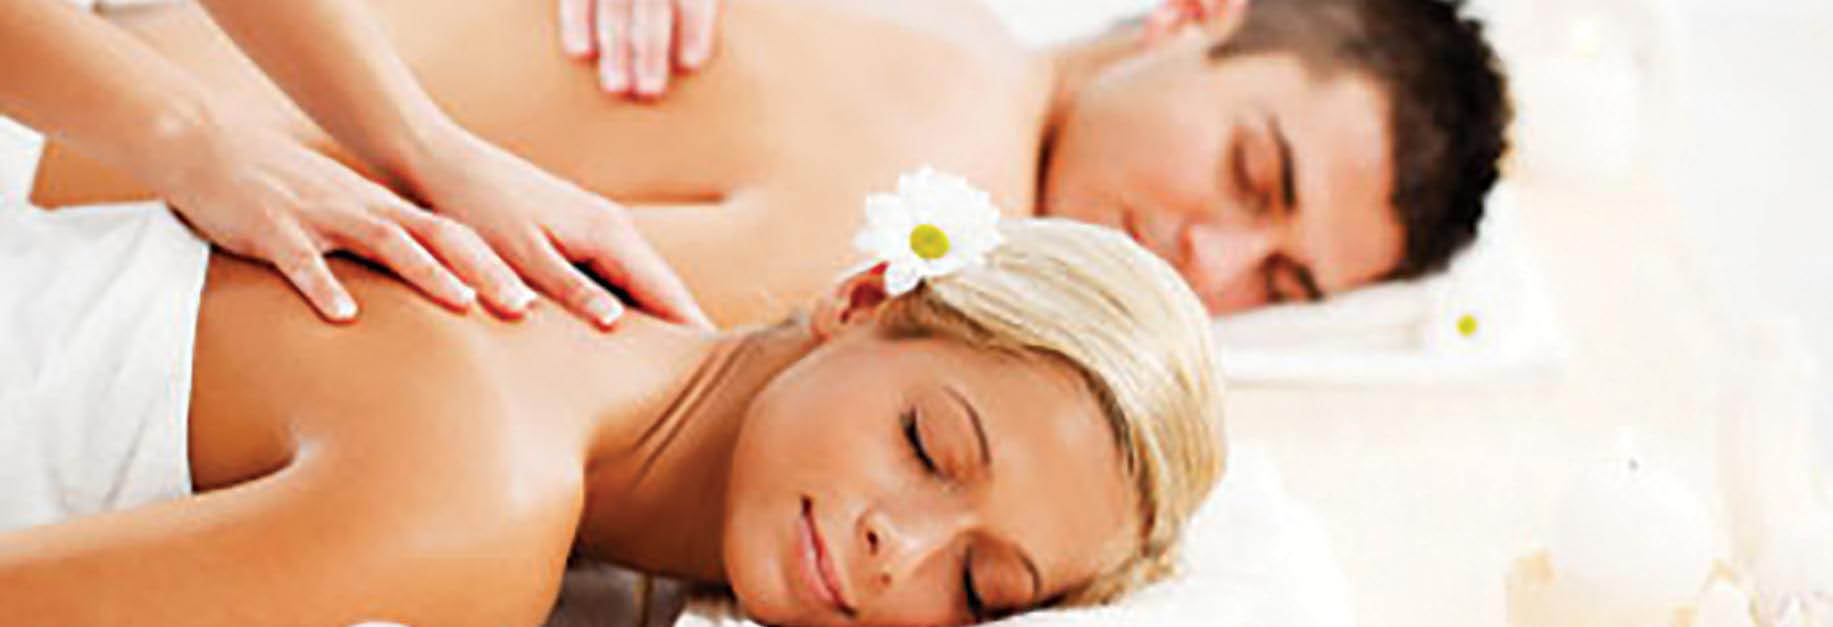 healing hands massage pedicure manicure facial rochester ny coupons